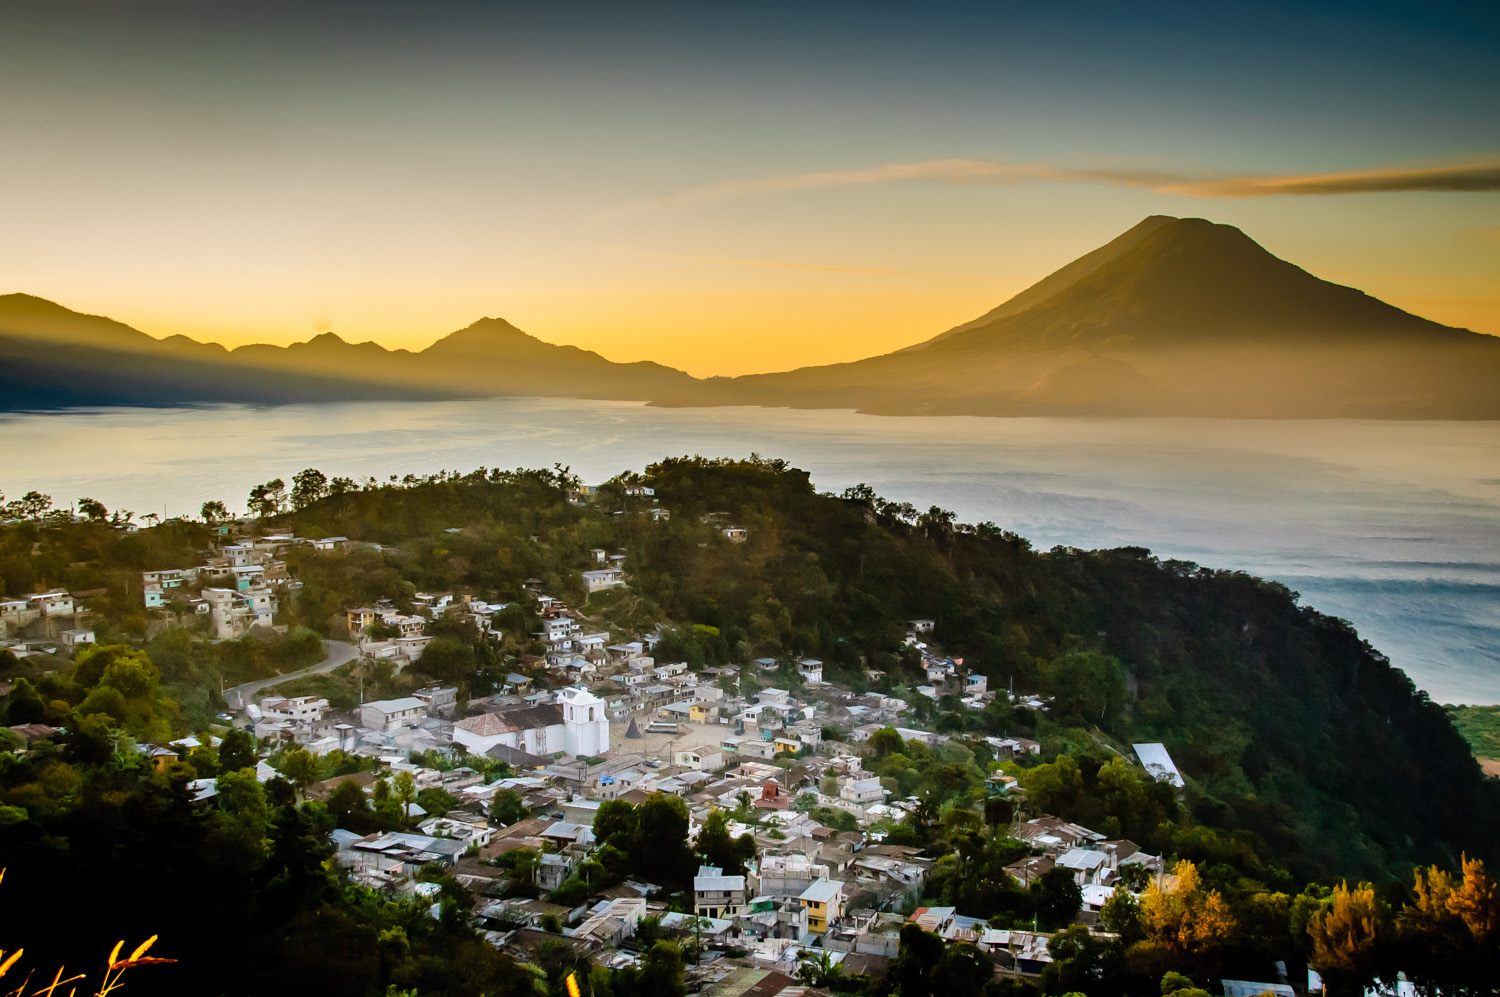 Sunrise over Lake Atitlán, Guatemala